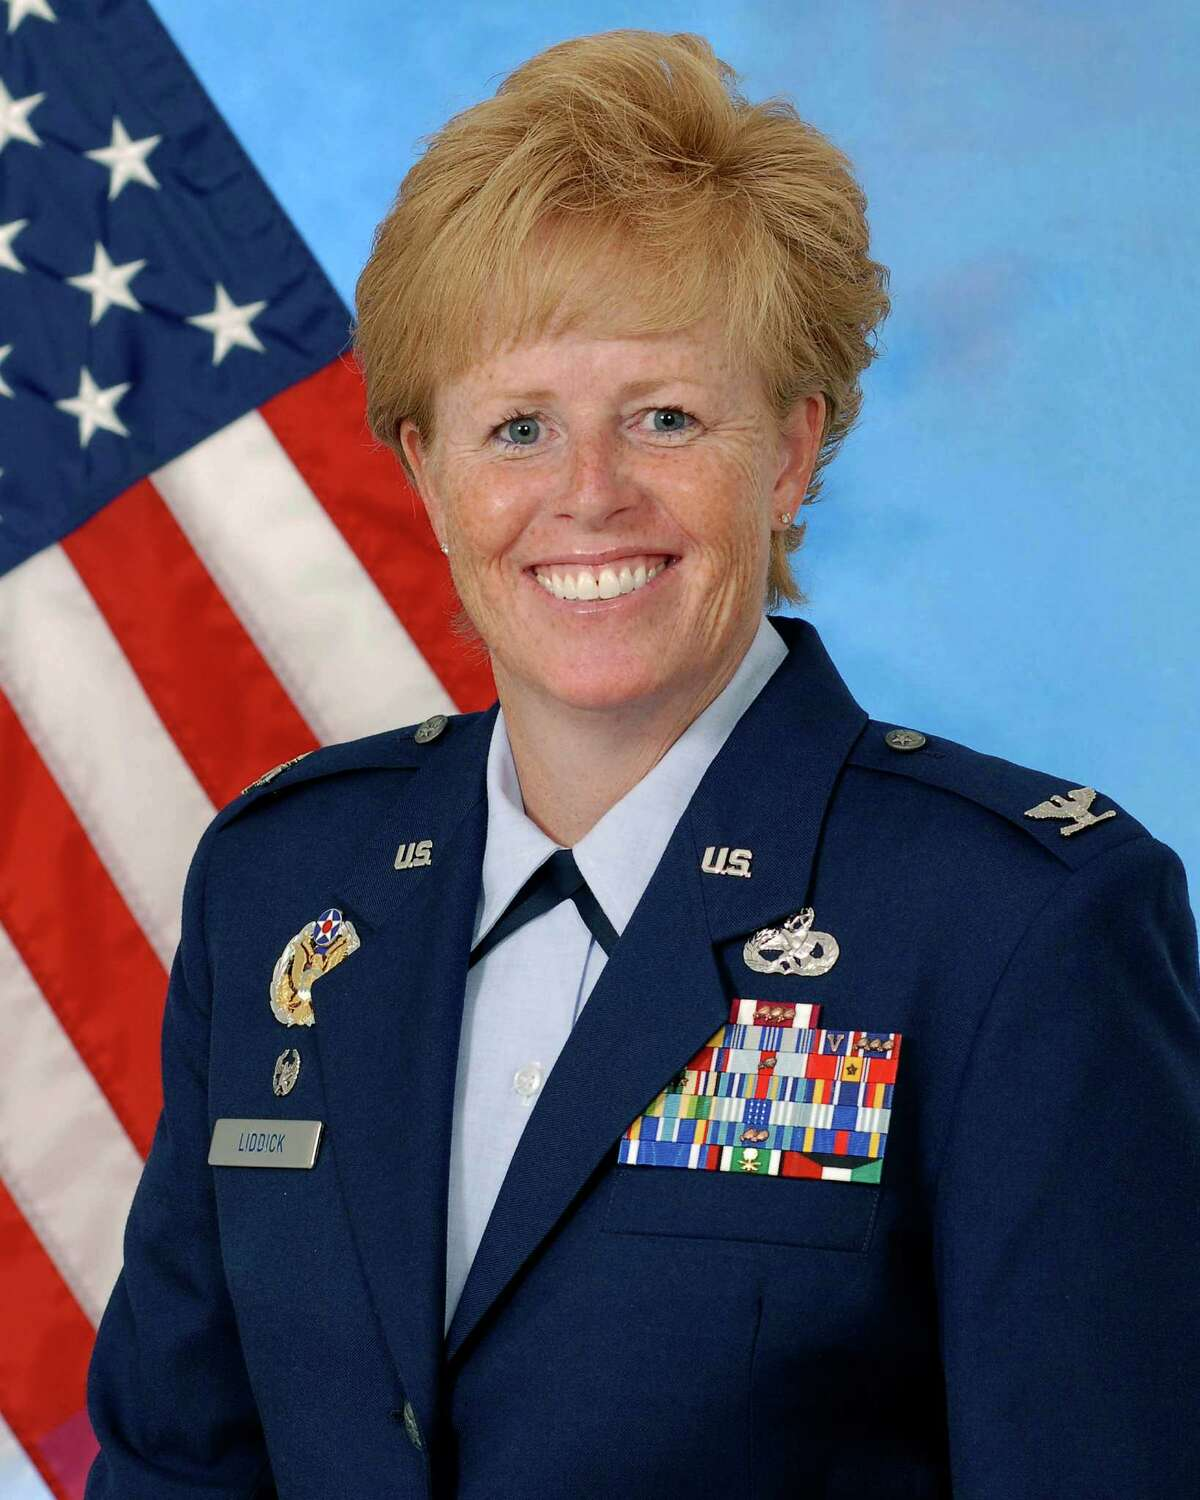 Deborah Liddick has been appointed as commander of the 737th Training Group at Joint Base San Antonio--Lackland